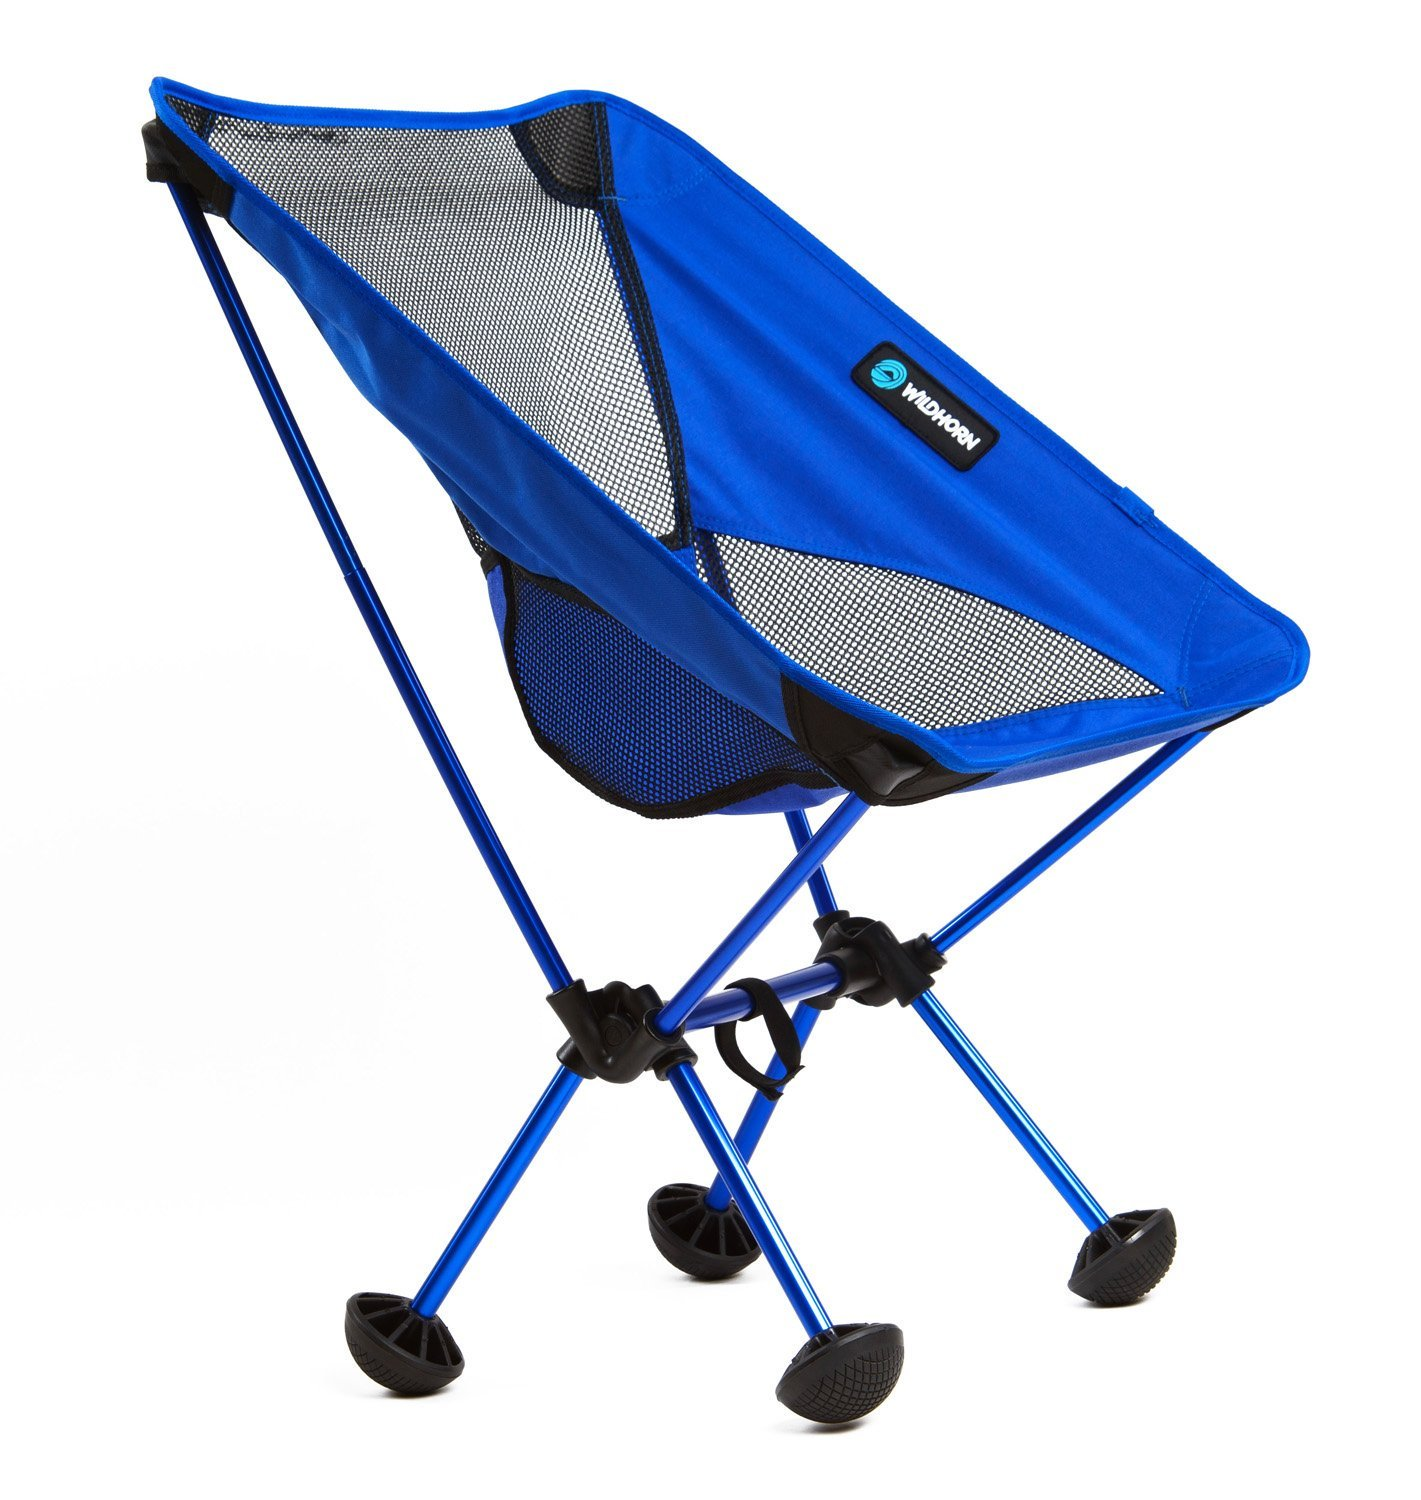 Wildhorn Outfitters TerraLite Portable Folding Camping & Beach Chair, Dark Blue